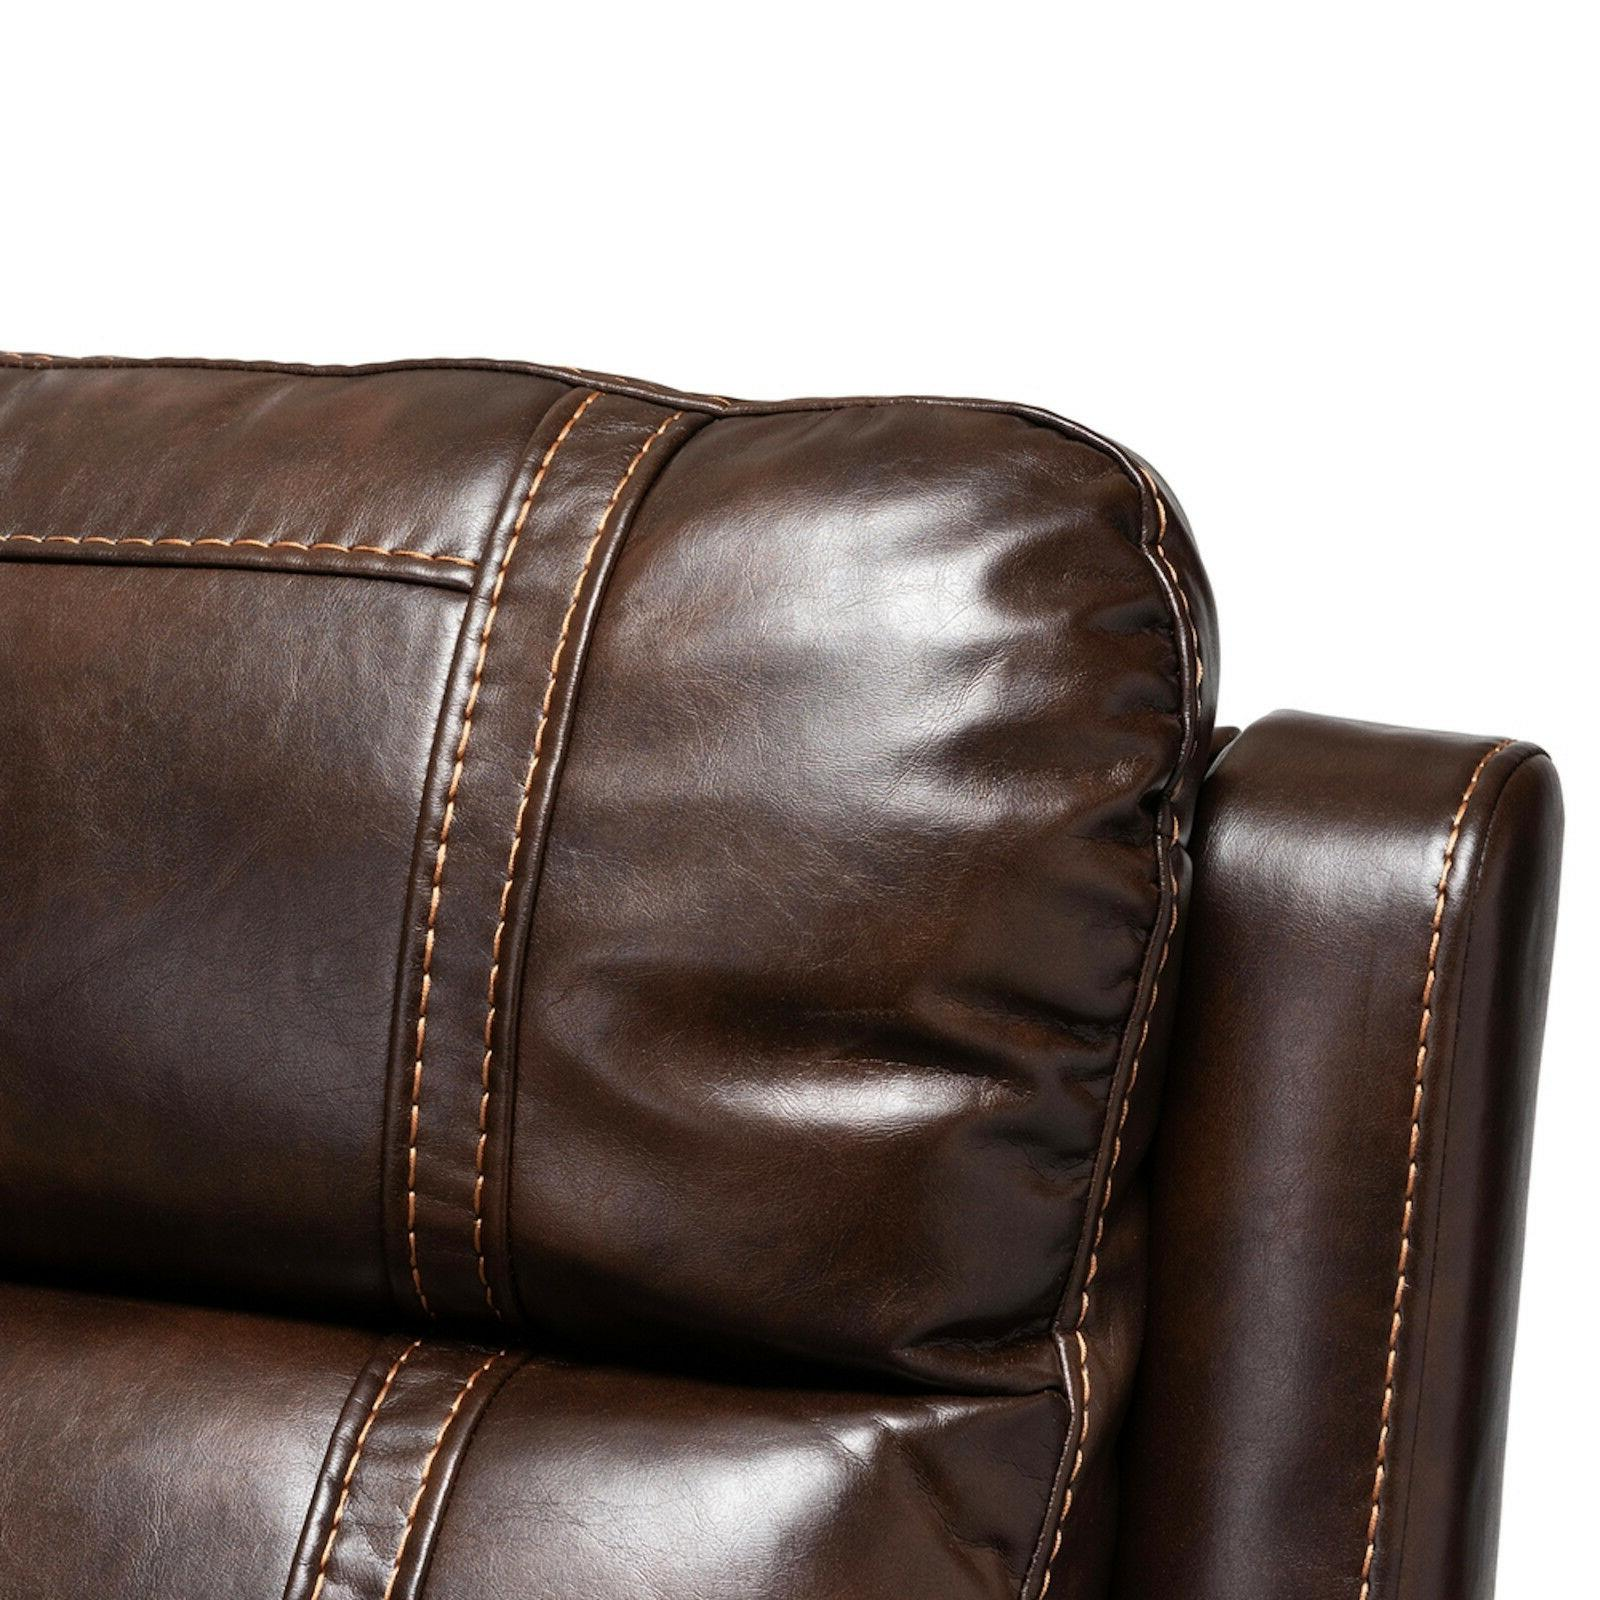 MODERN BROWN FAUX LEATHER 6-PIECE RECLINER LOUNGE